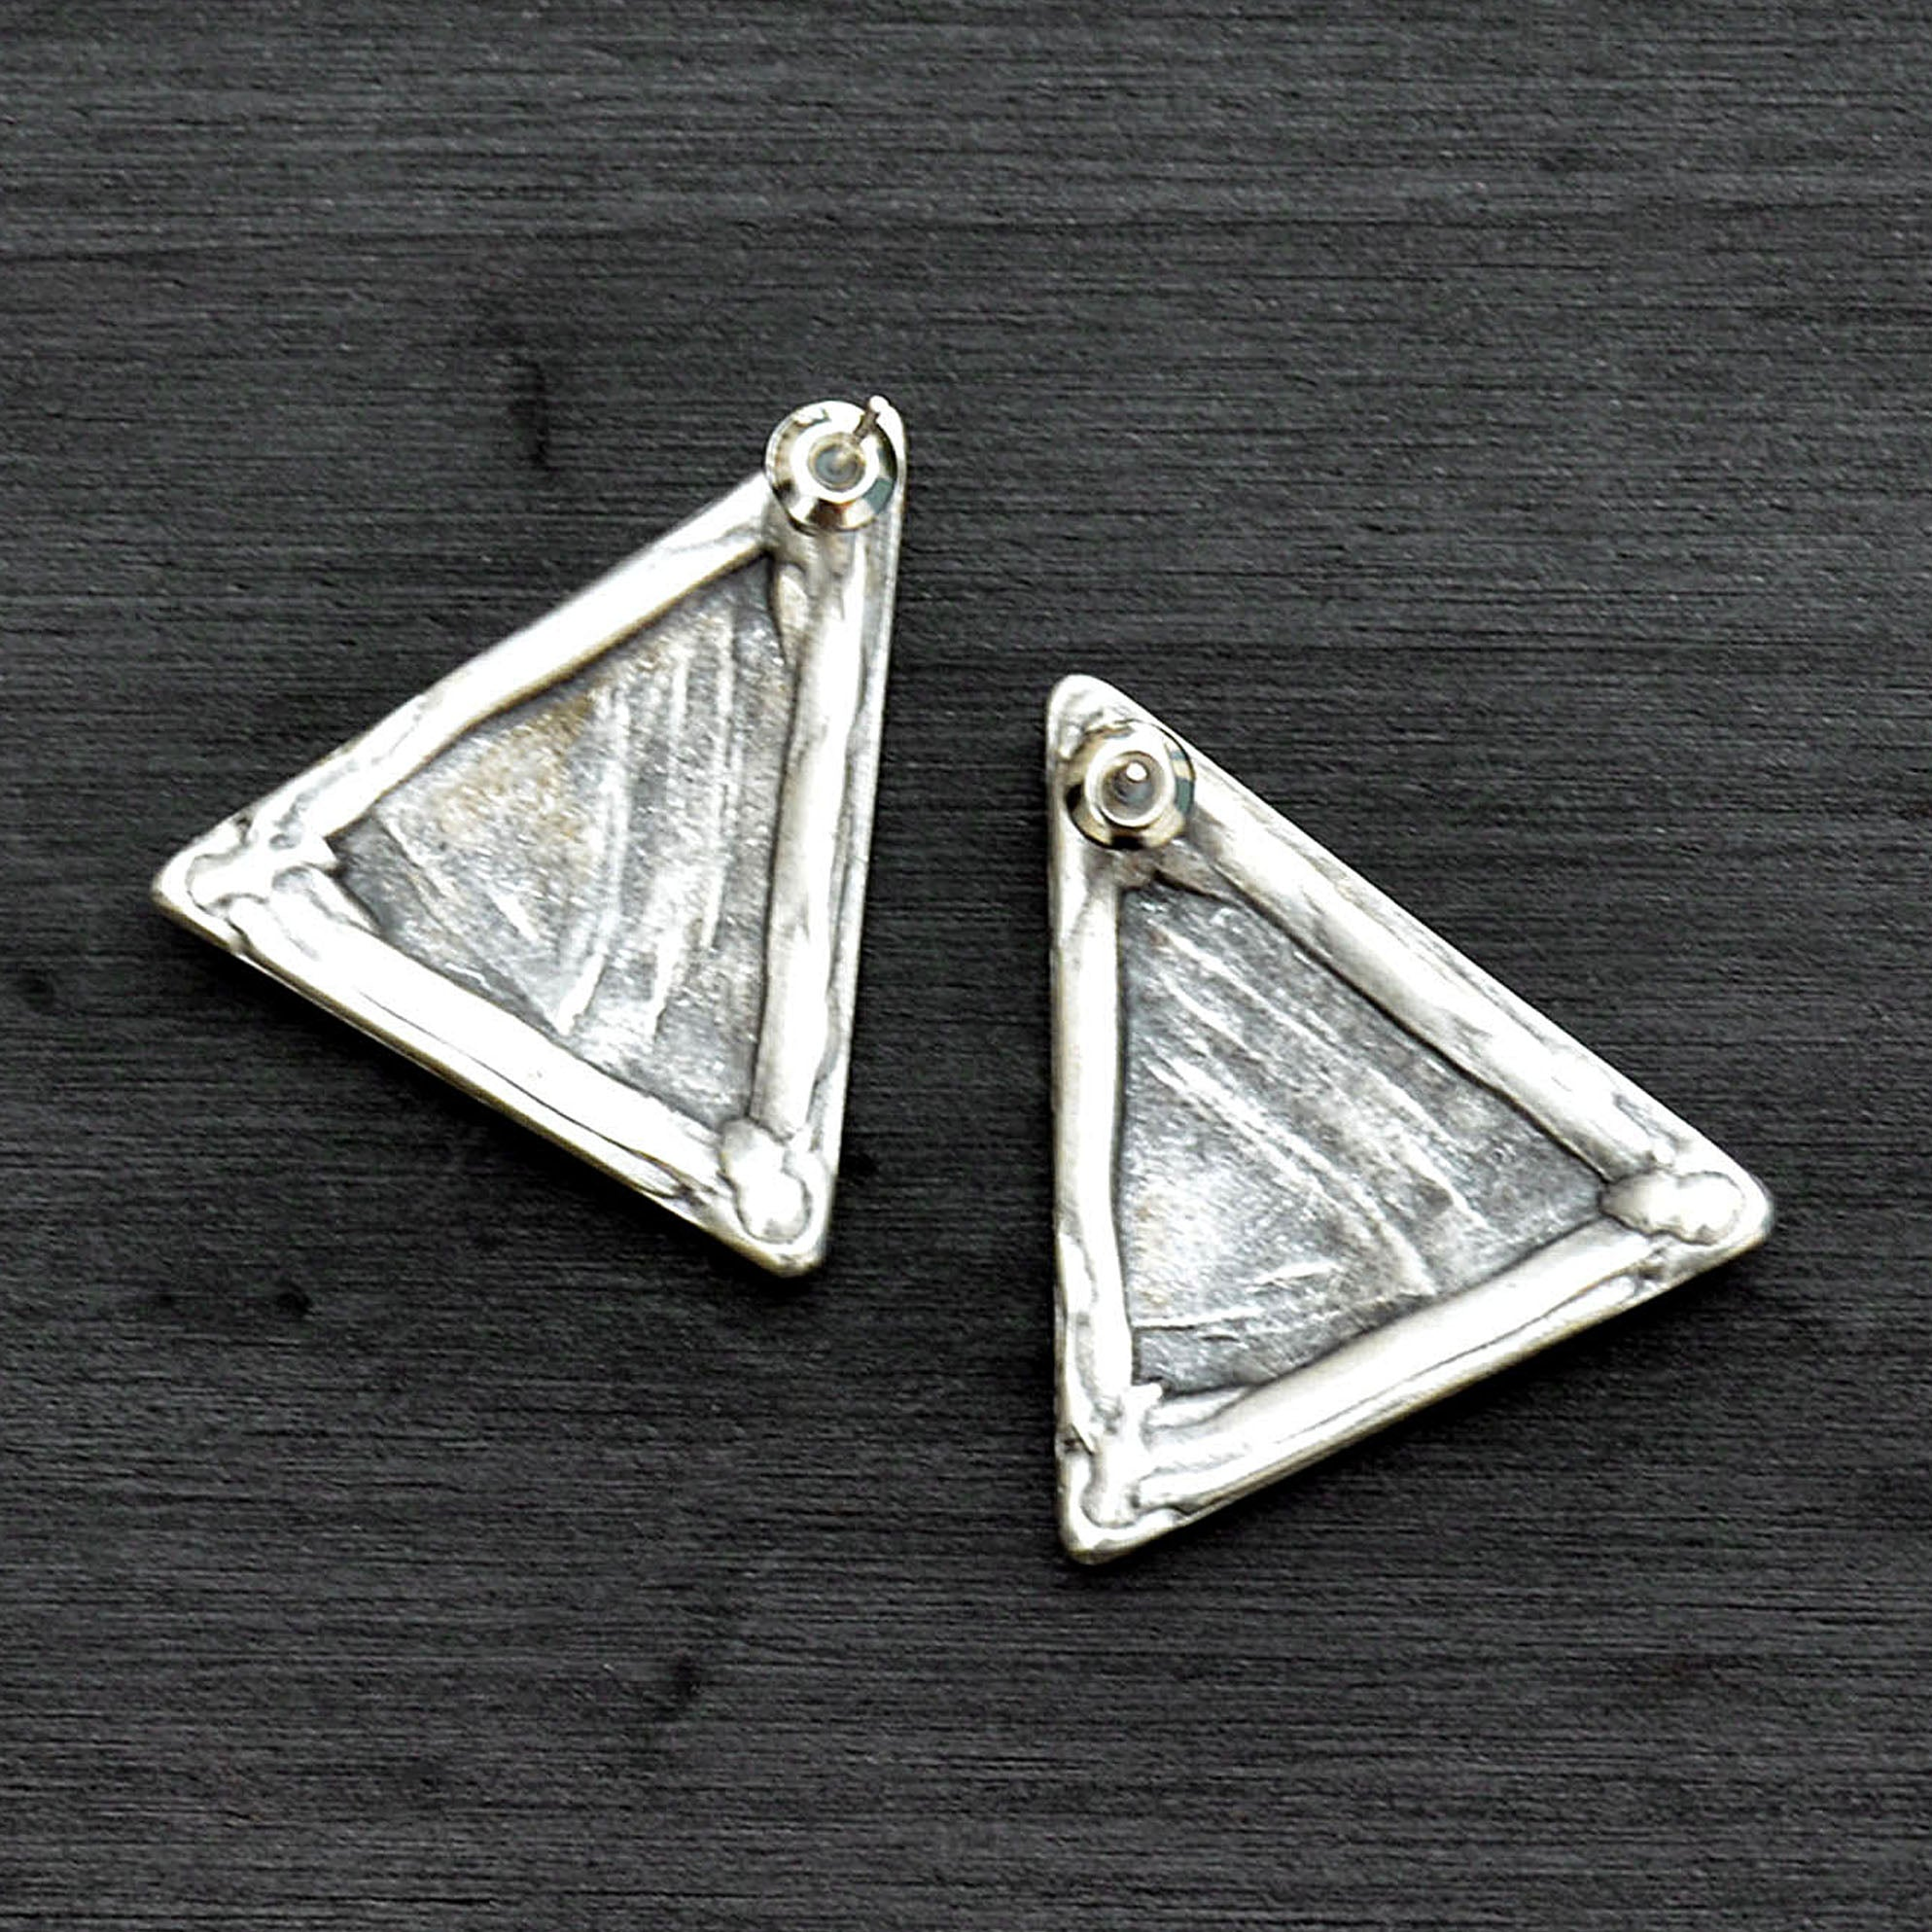 Silver geometric stud earrings